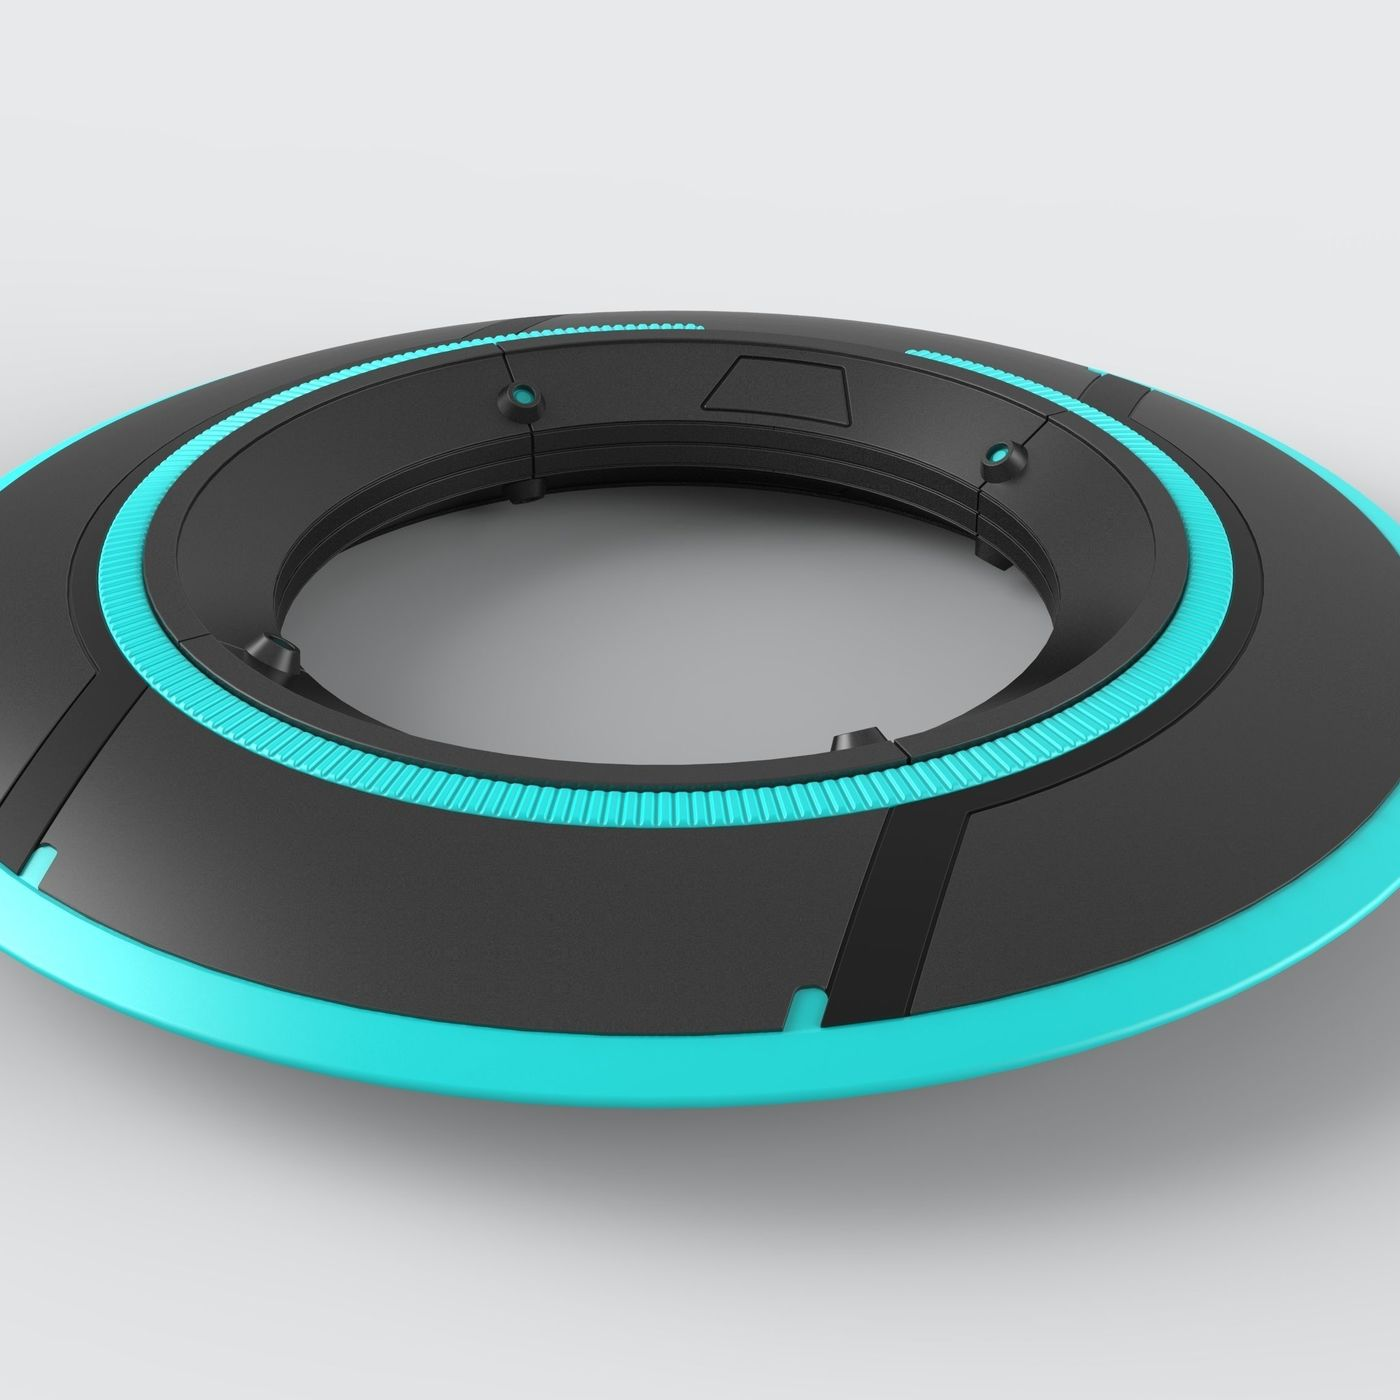 Identity disk from Tron Legacy